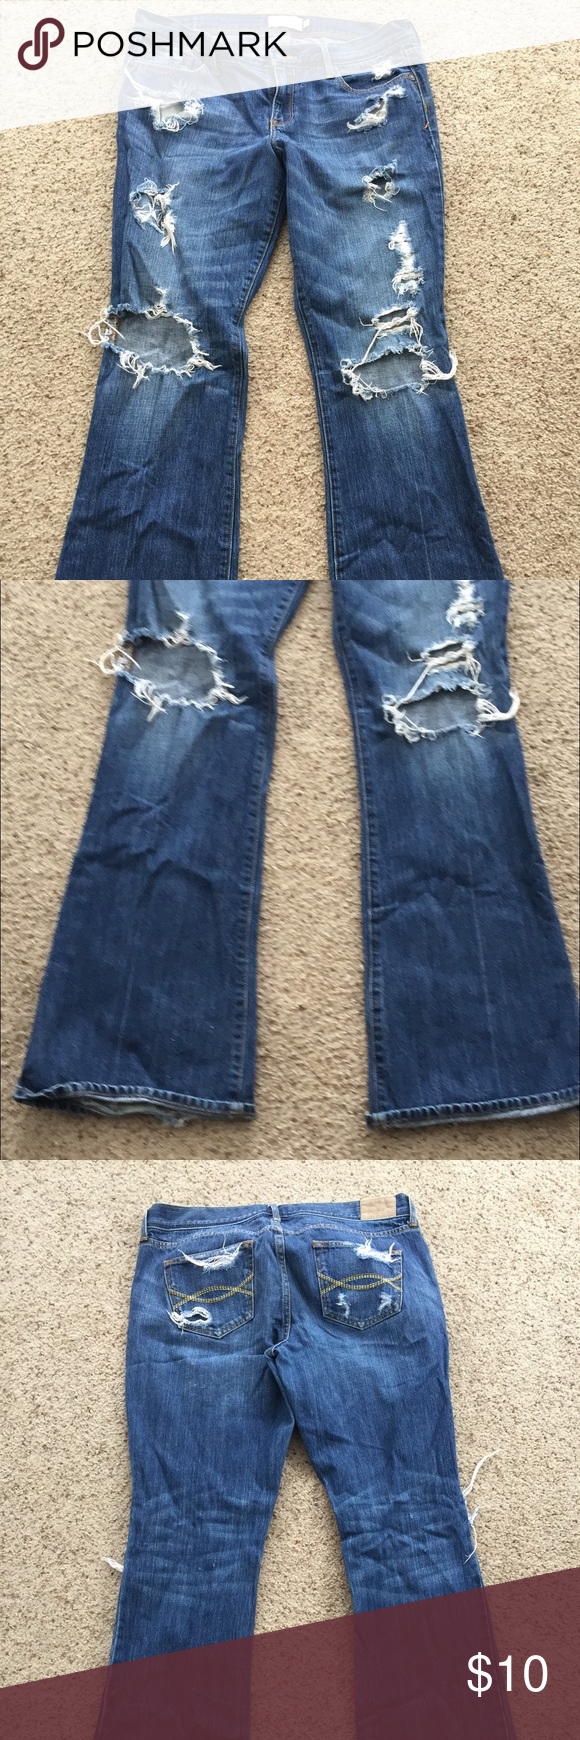 Abercrombie and Finch Jeans Size 8 Abercrombie and Finch Jeans Abercrombie & Fitch Jeans Boot Cut